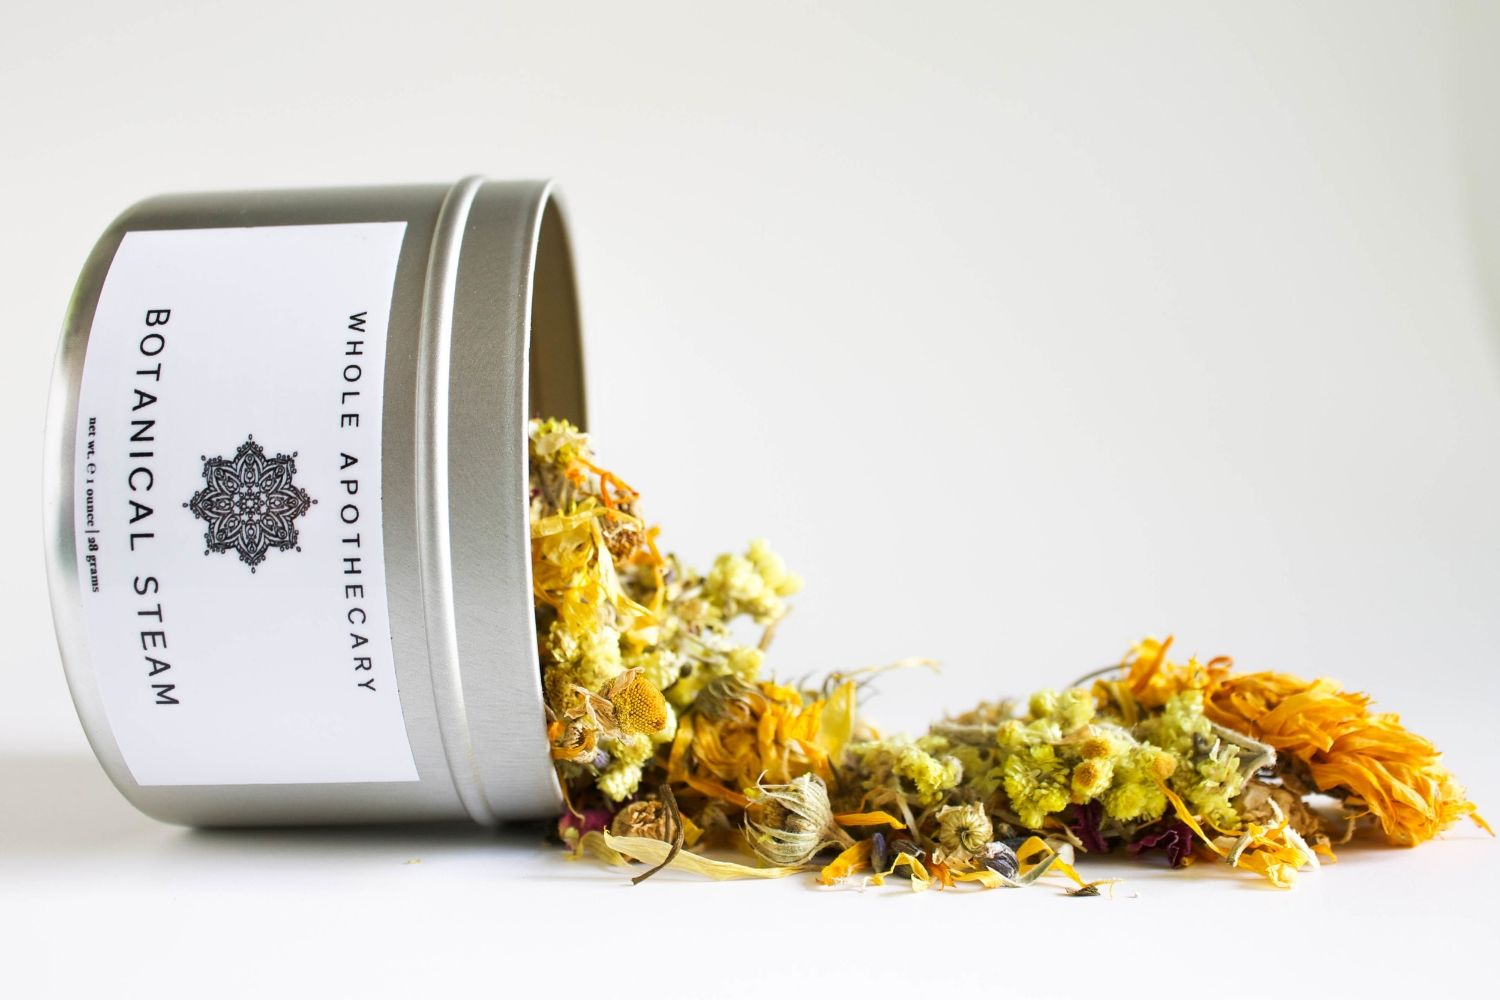 Botanical Steam // botanical face steam made from organic herbs and flowers. relaxing and rejuvenating for mind and body | wholeapothecary.com